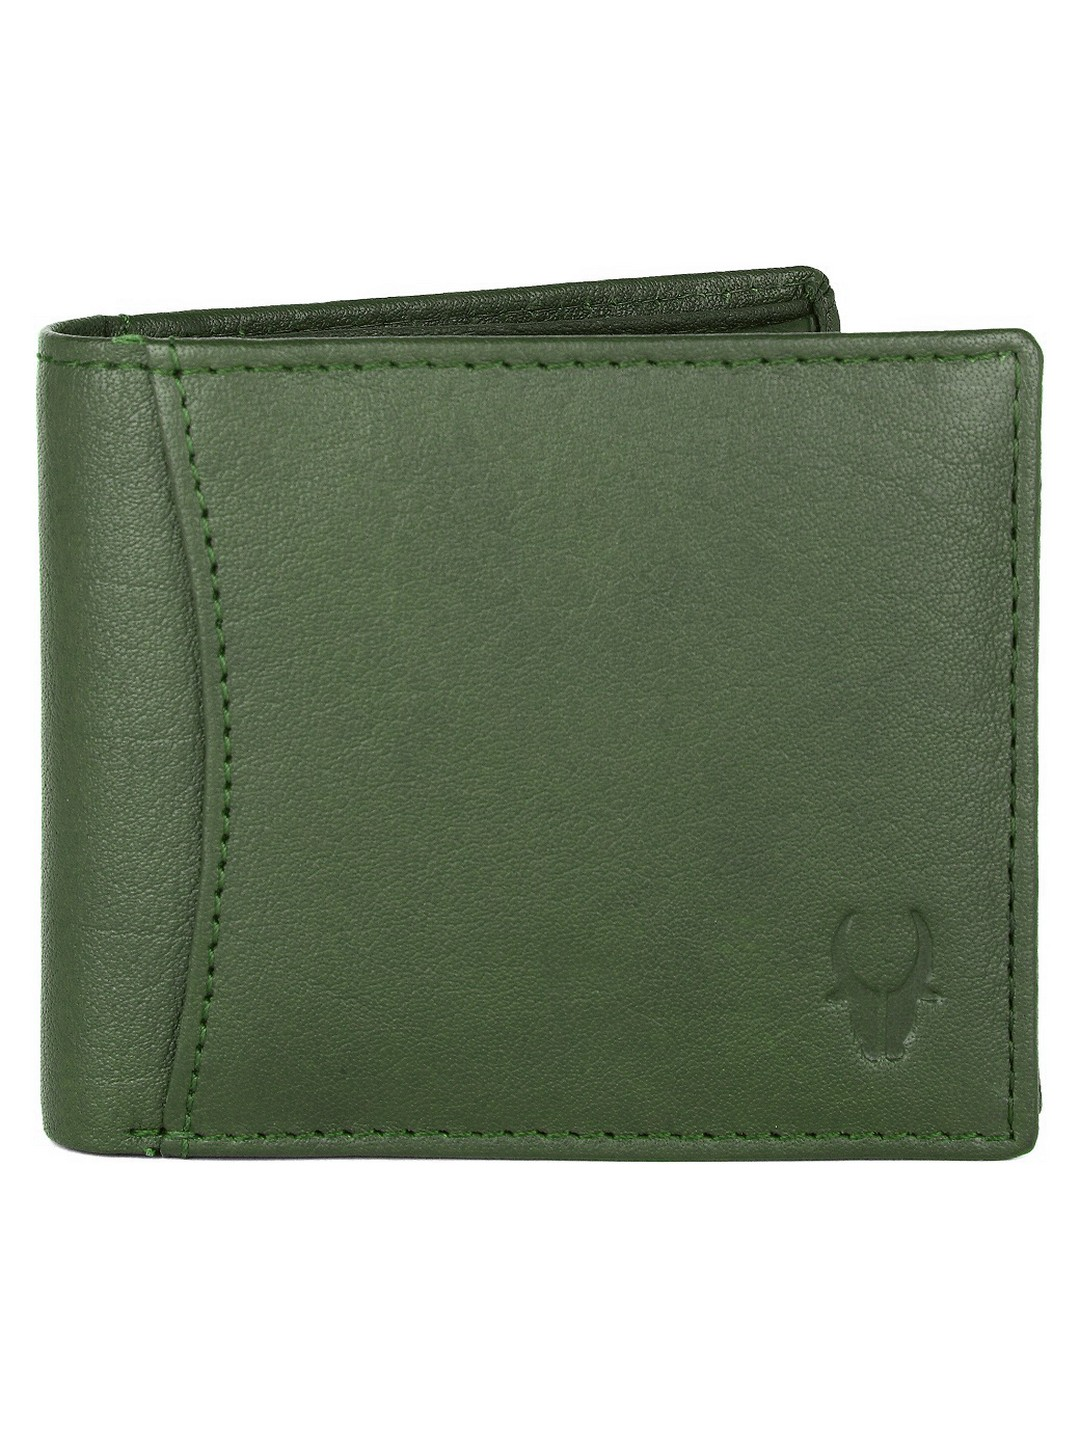 WildHorn | WildHorn RFID Protected Genuine High Quality Leather Green Wallet for Men